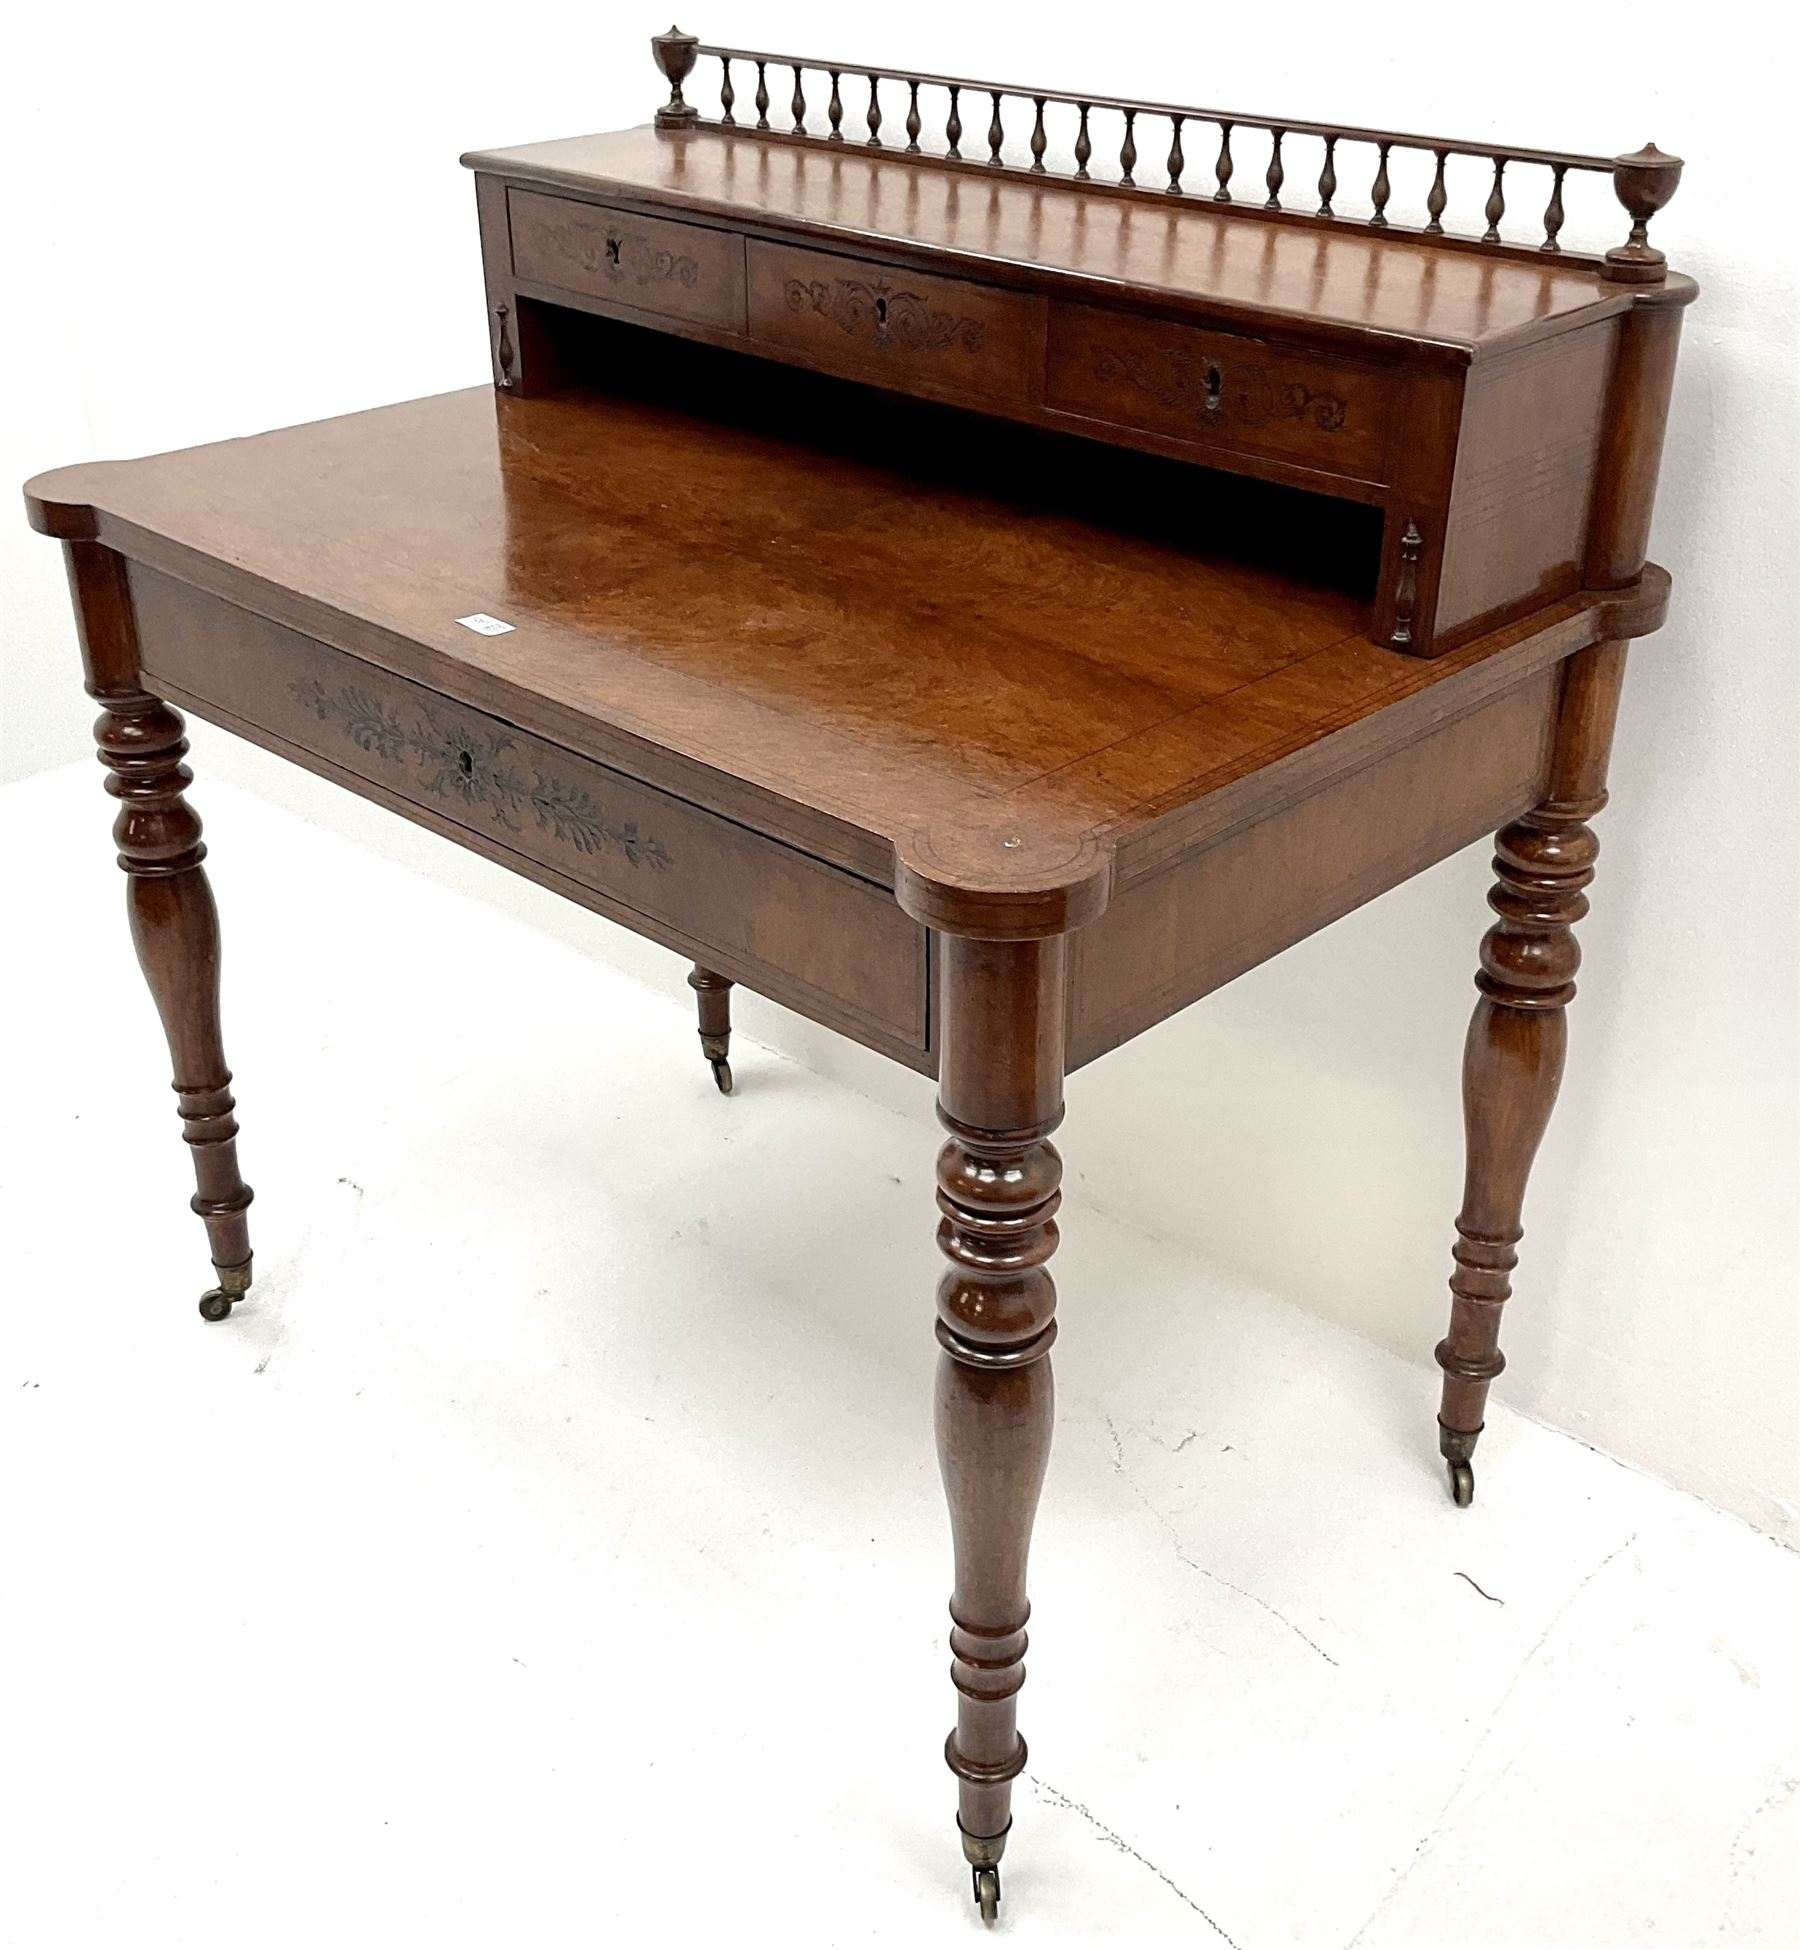 19th century inlaid grained oak writing desk - Image 2 of 4